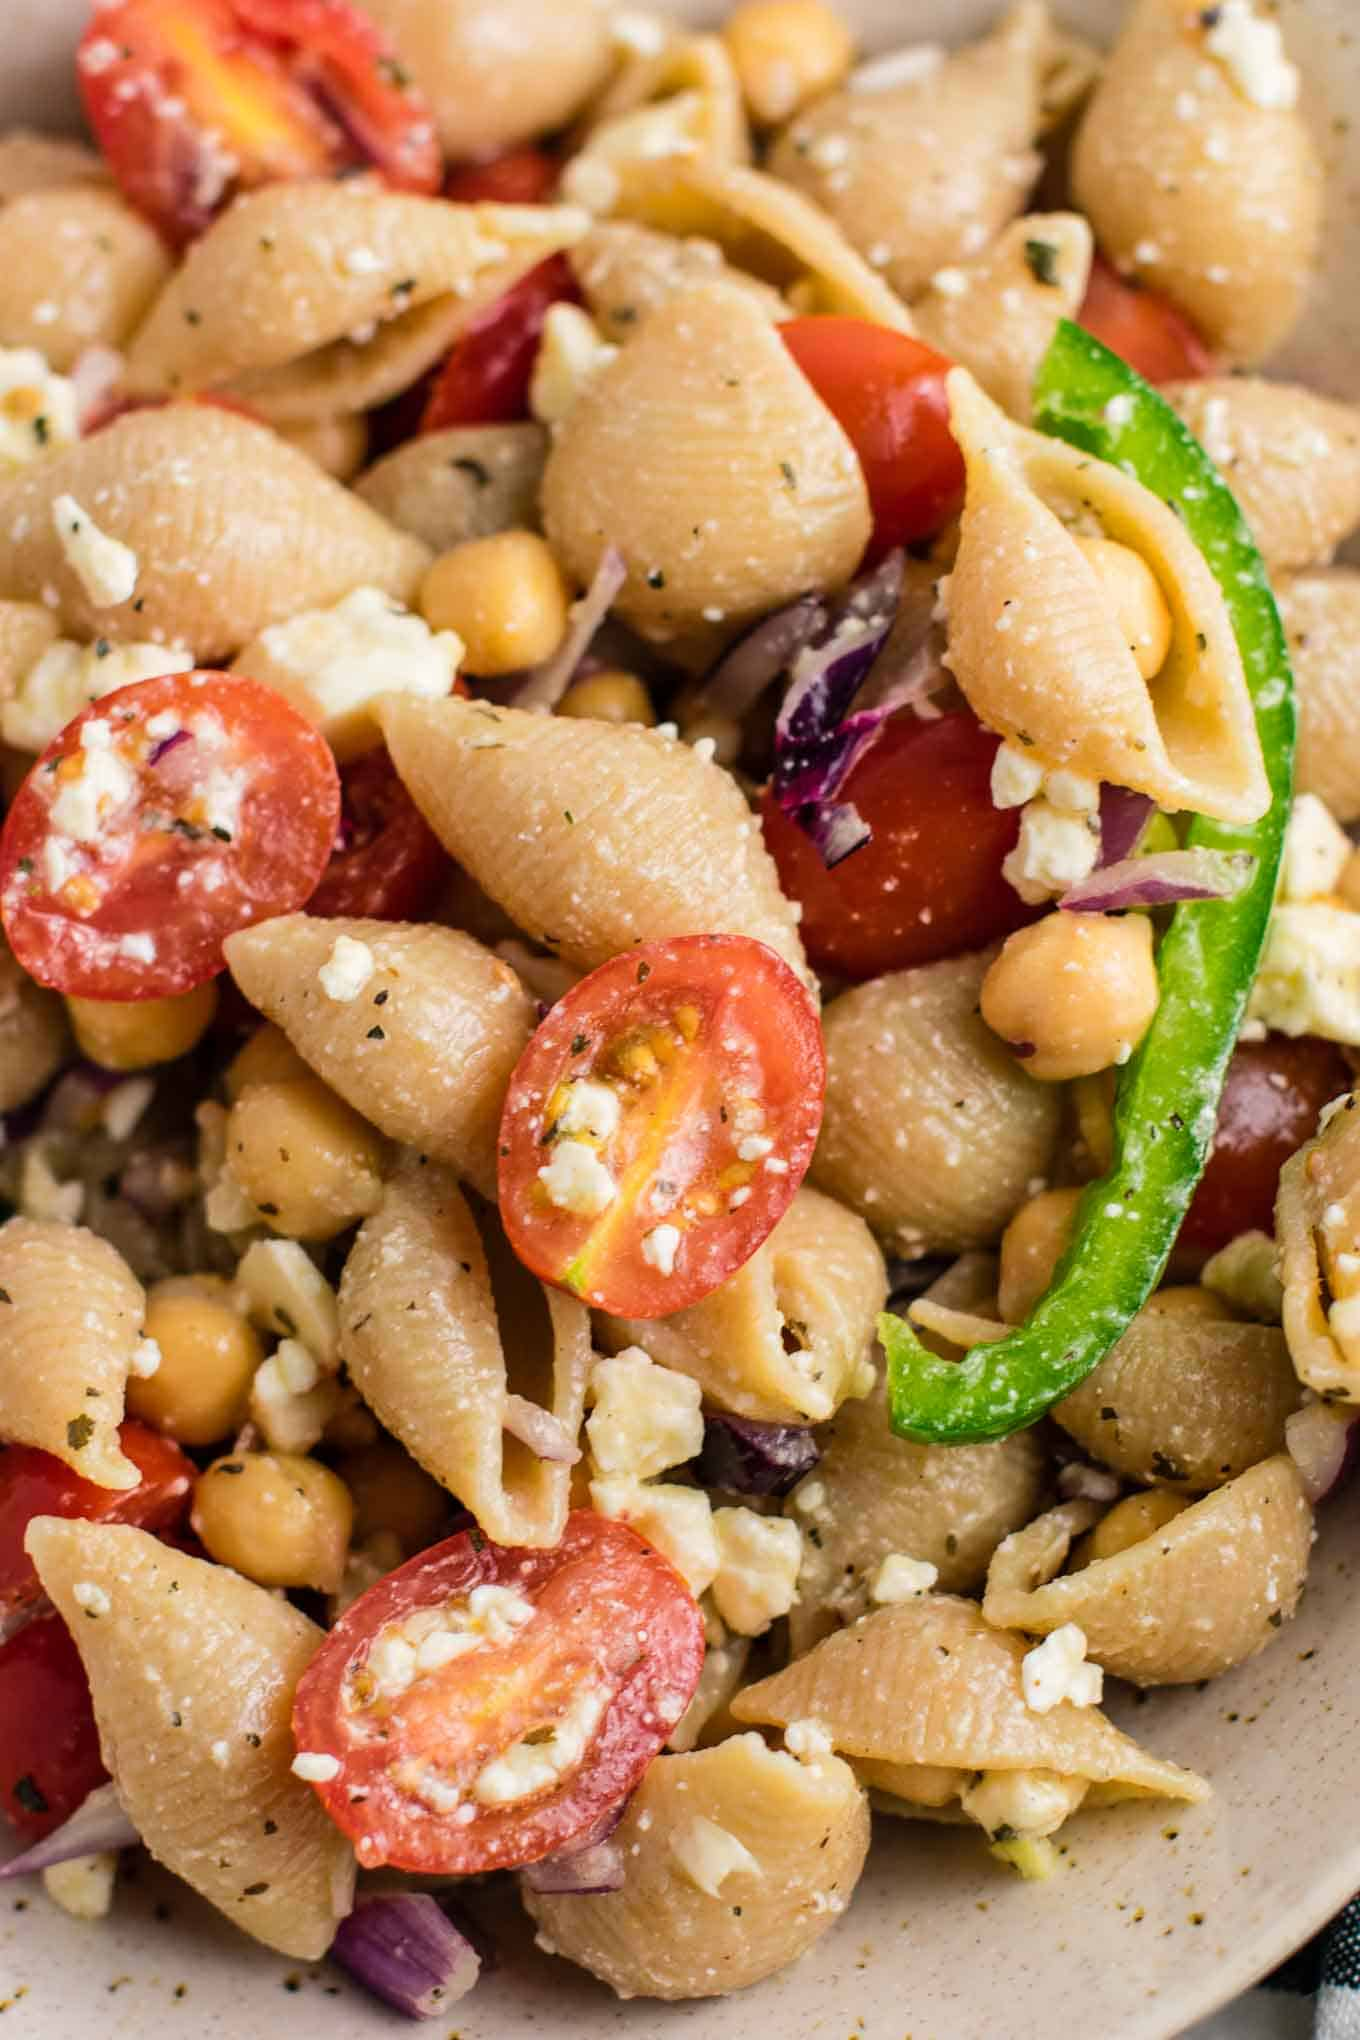 This Chickpea Pasta Salad with whole wheat pasta is an easy vegetarian pasta salad recipe. Perfect to take to parties, or as a healthy meal prep lunch. So addicting and full of good for you ingredients! #vegetarian #pastasalad #chickpea #feta #vegetarianpastasalad